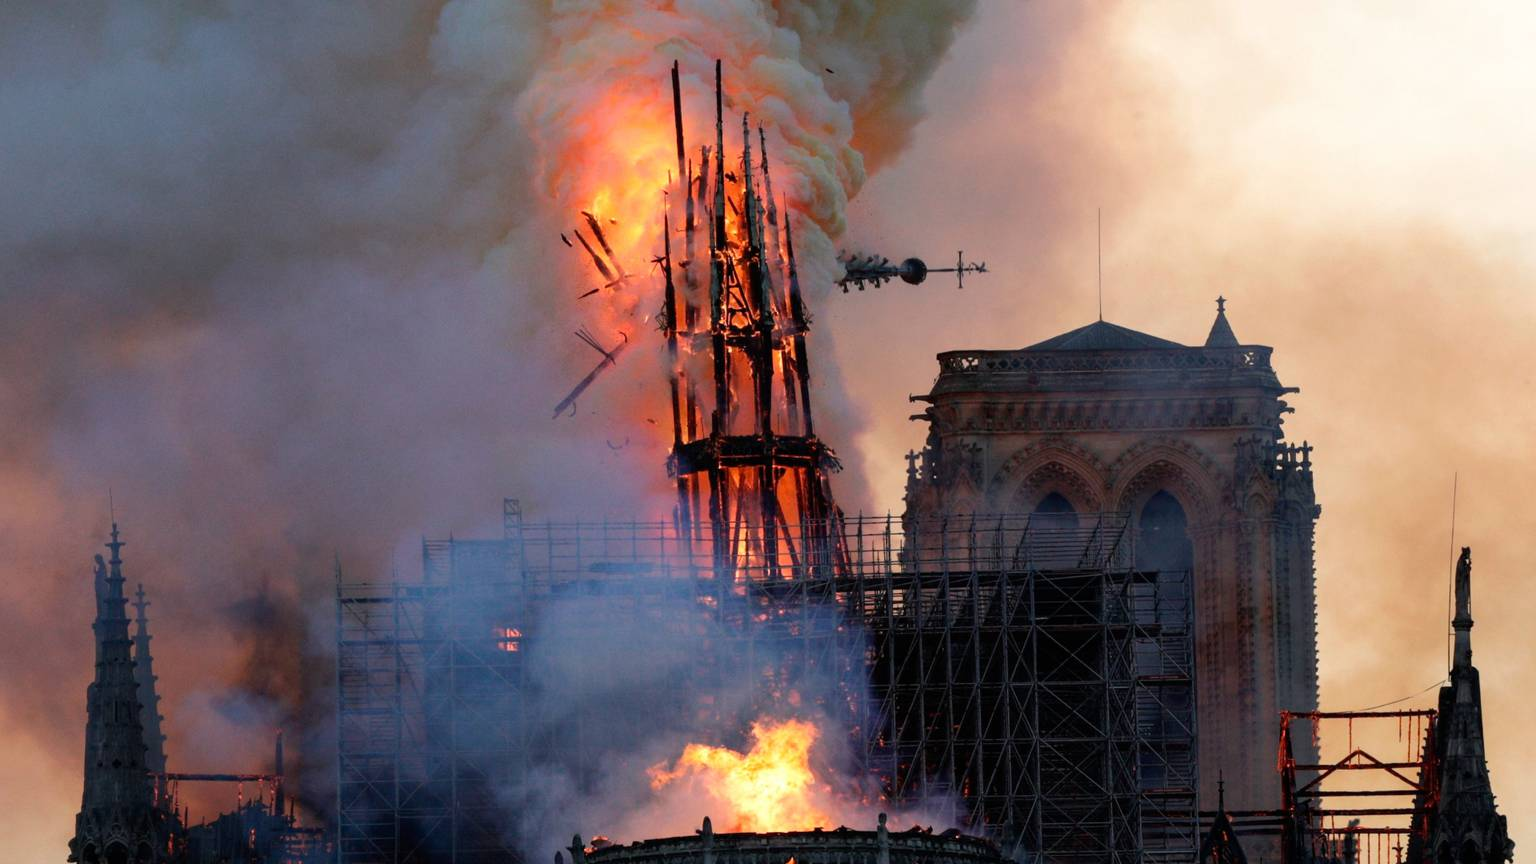 Notre-Dame Cathedral devastated by fire